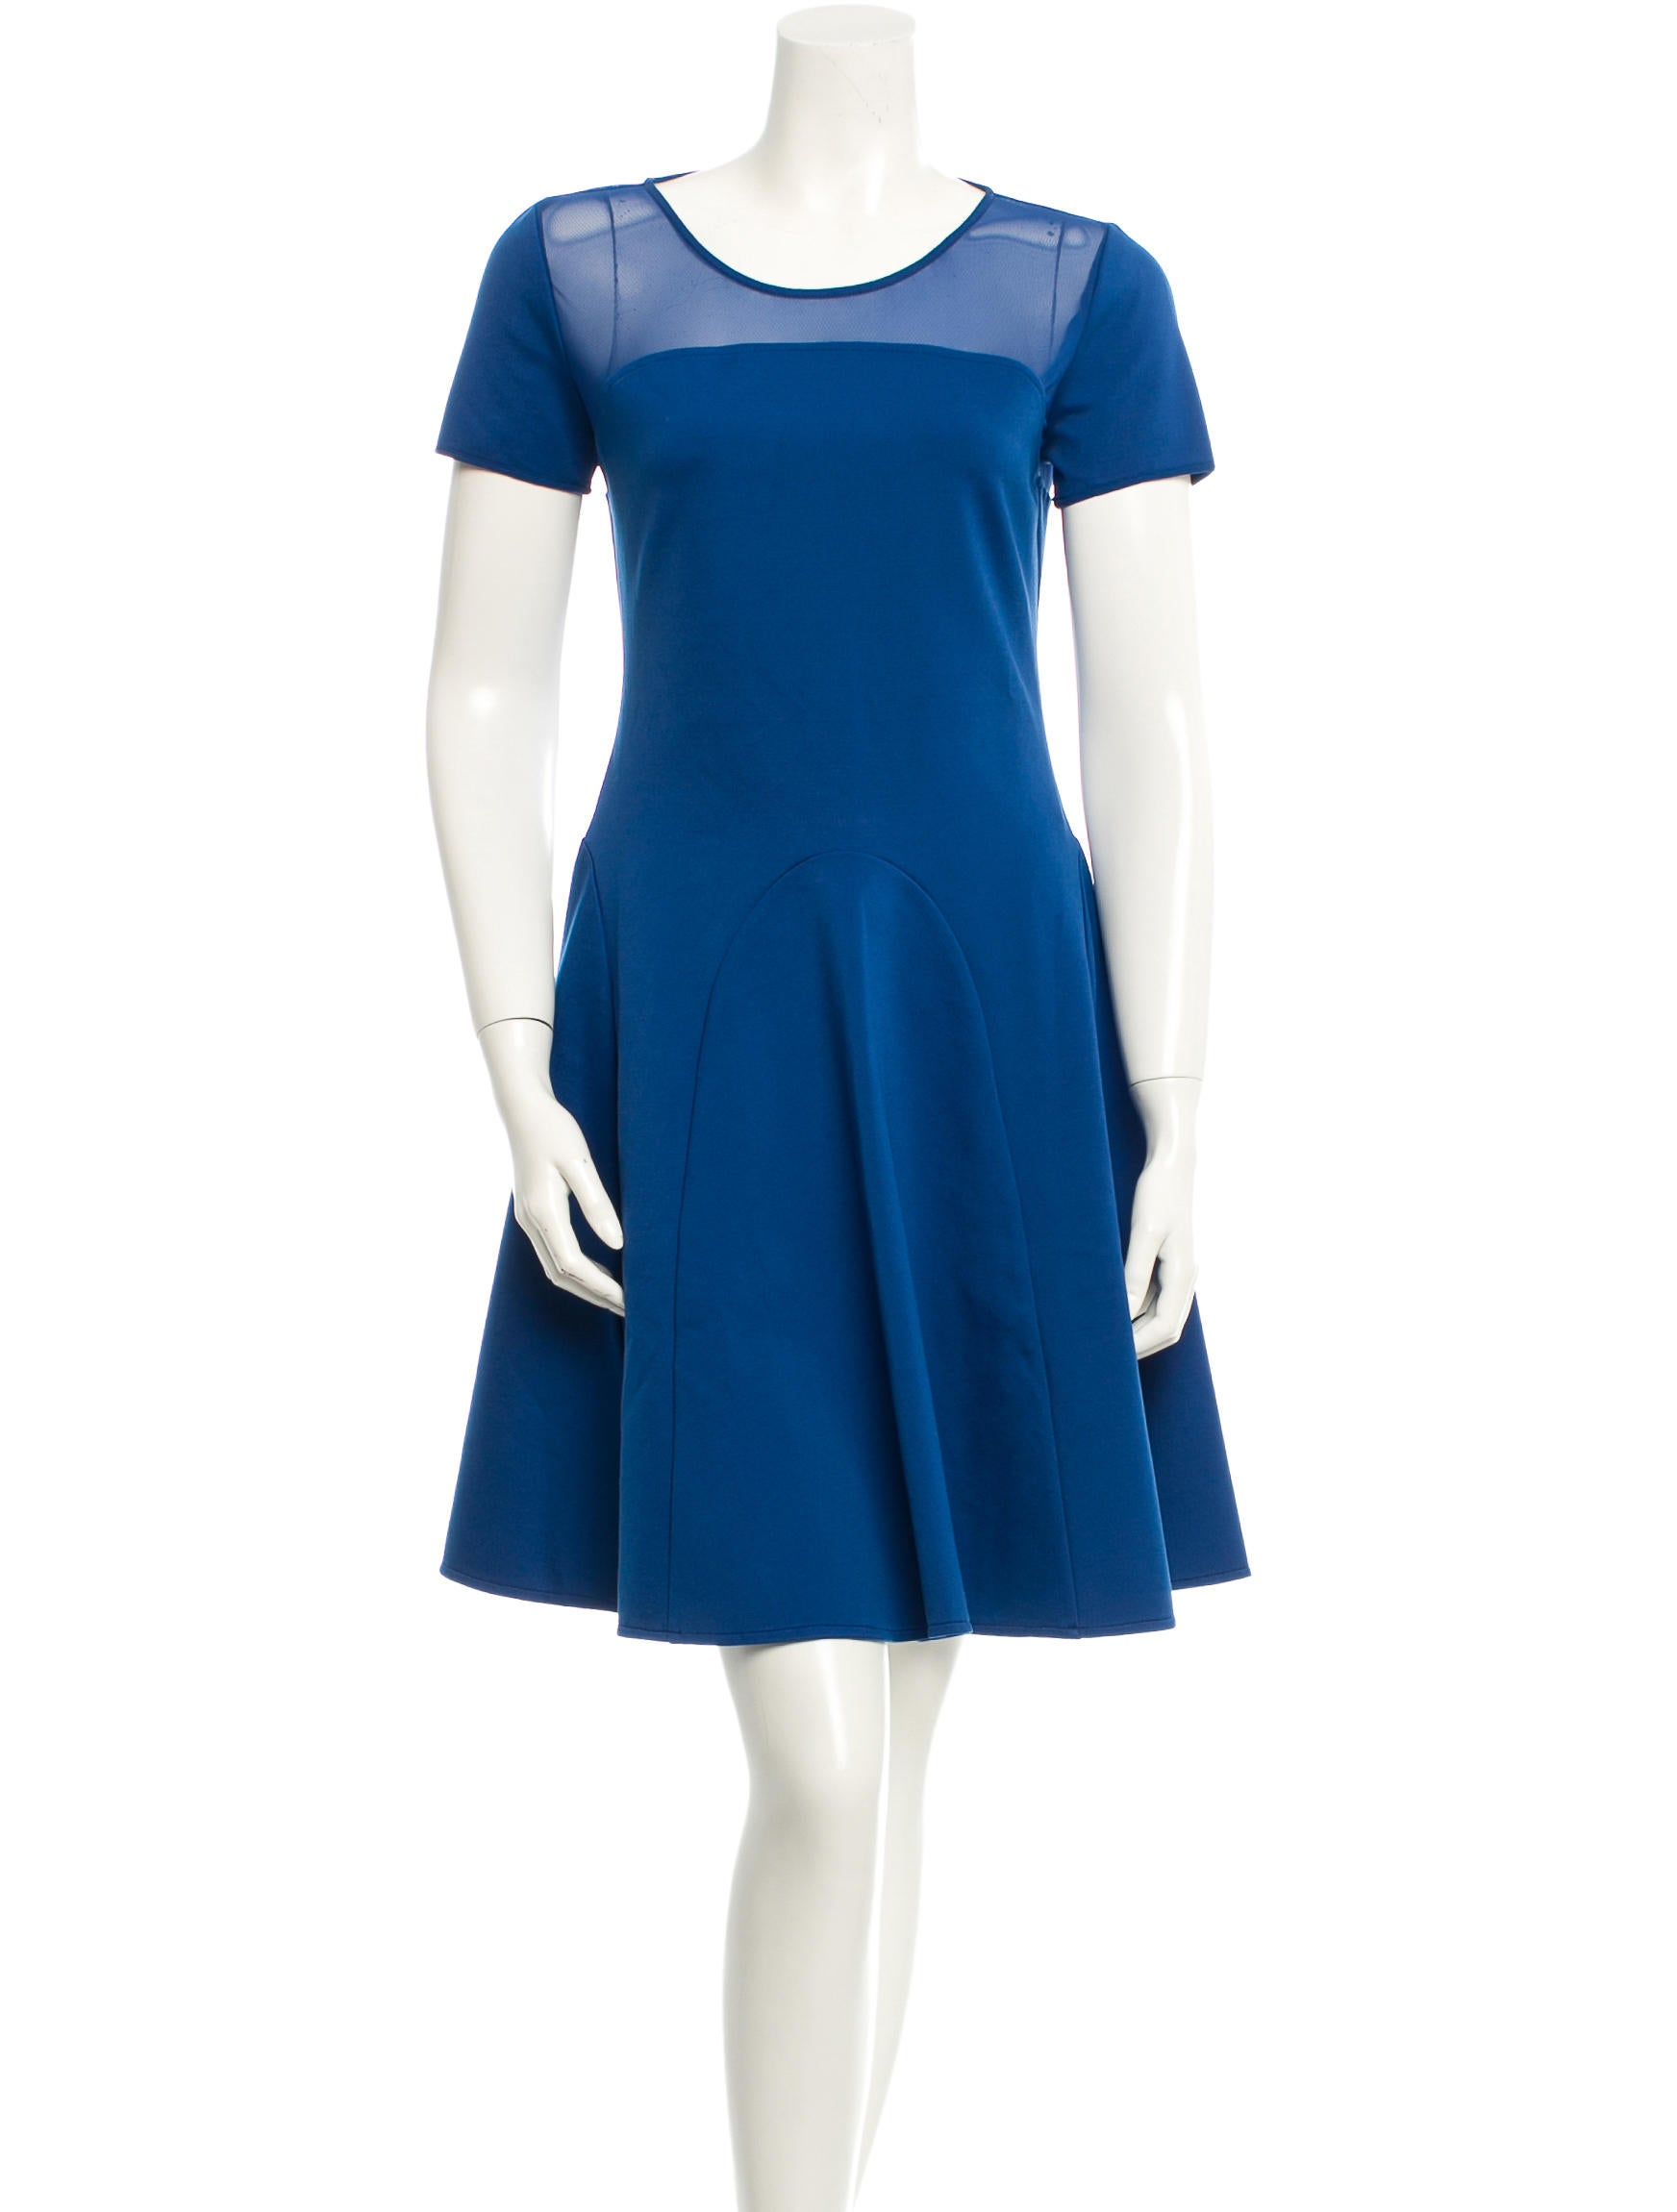 Halston heritage dress clothing wh121374 the realreal for Halston heritage shirt dress